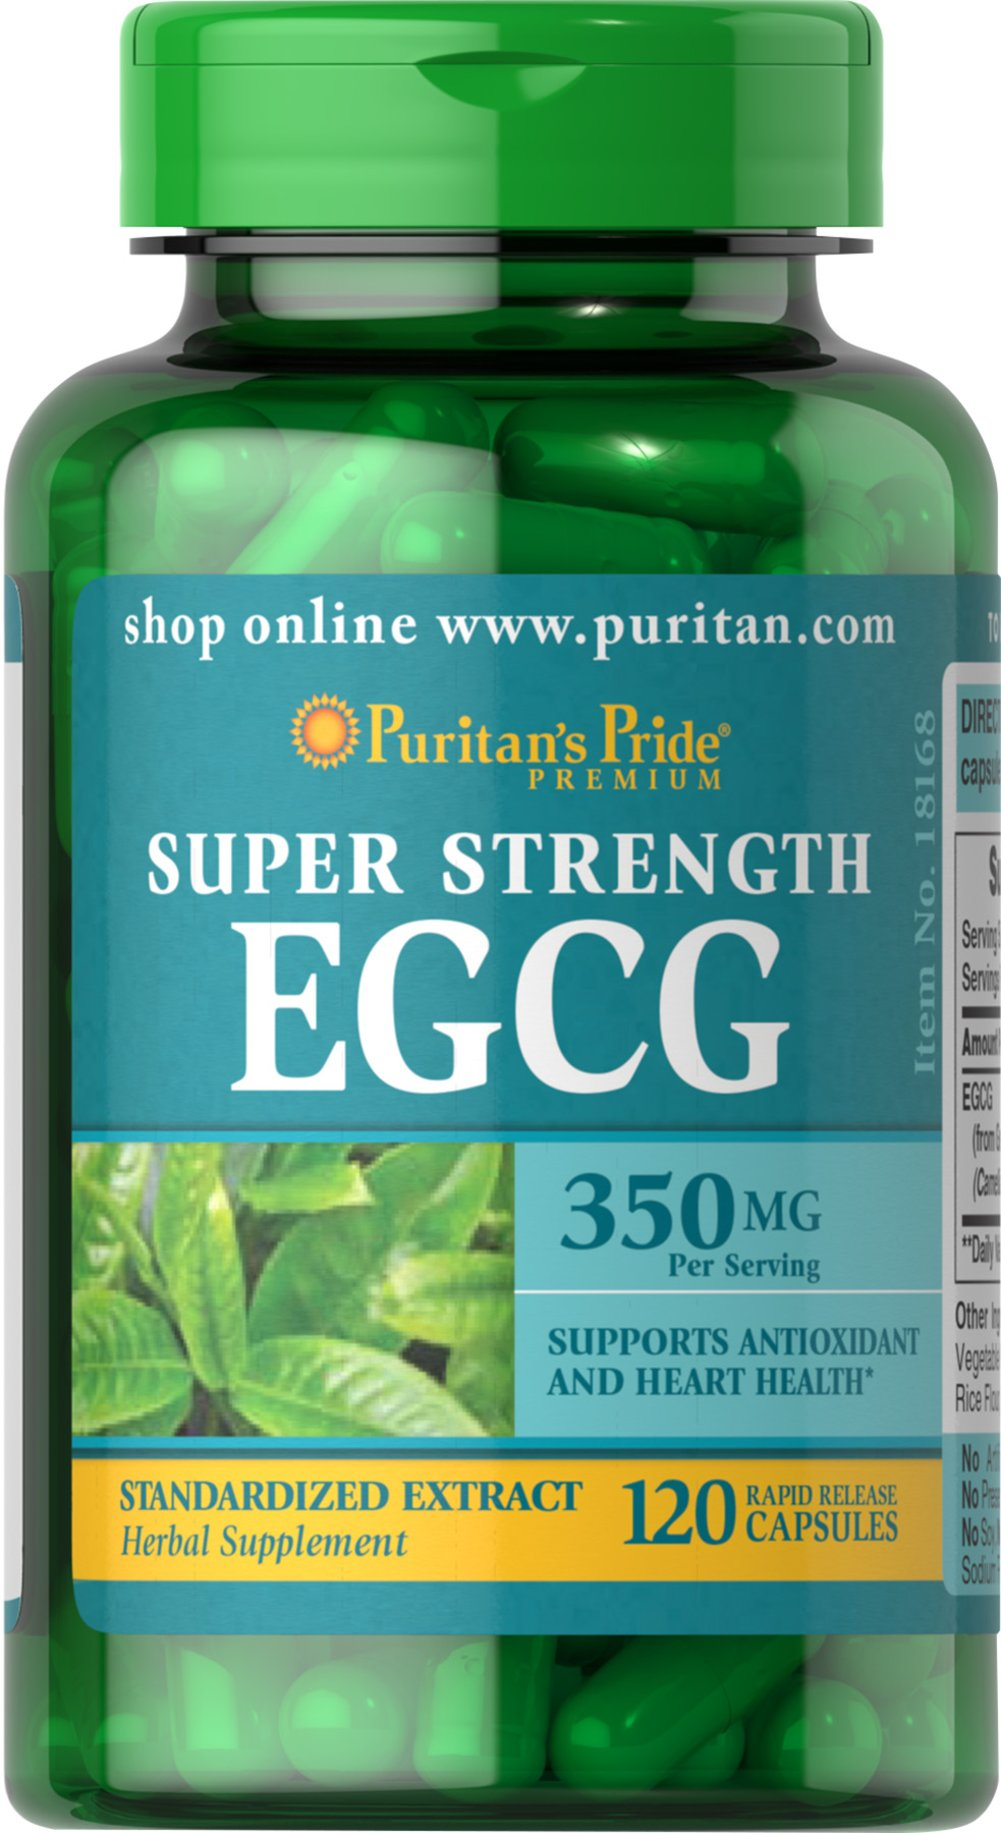 Super Strength EGCG 350 mg <p>Provides antioxidant support**</p><p>Supports healthy cell growth**</p><p>Promotes heart health**</p><p>Rapid Release capsules contain 350 mg of EGCG per serving</p><p>The natural polyphenols and flavonoids within Green Tea contribute to its powerful antioxidant properties.** Green Tea provides double immune system support by fighting cell-damaging free radicals while promoting healthy cell growth.**</p> 12